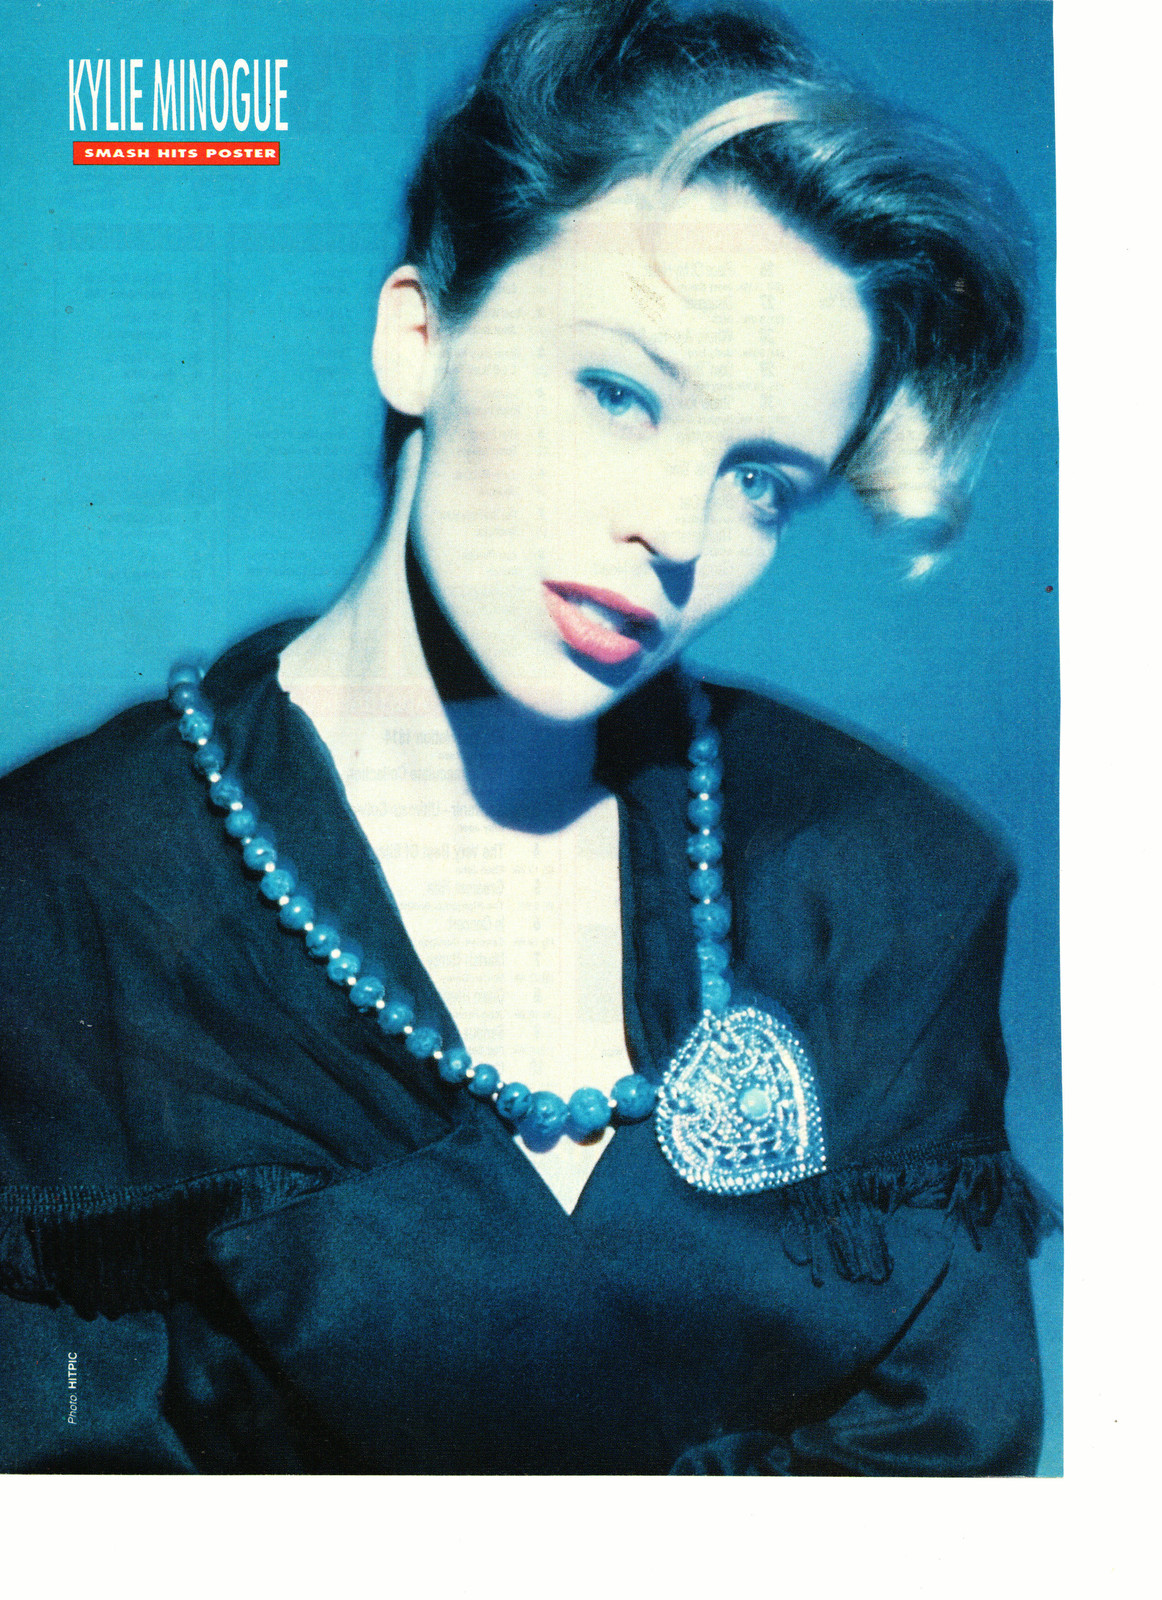 Primary image for Kylie Minogue teen magazine pinup clipping blue necklace